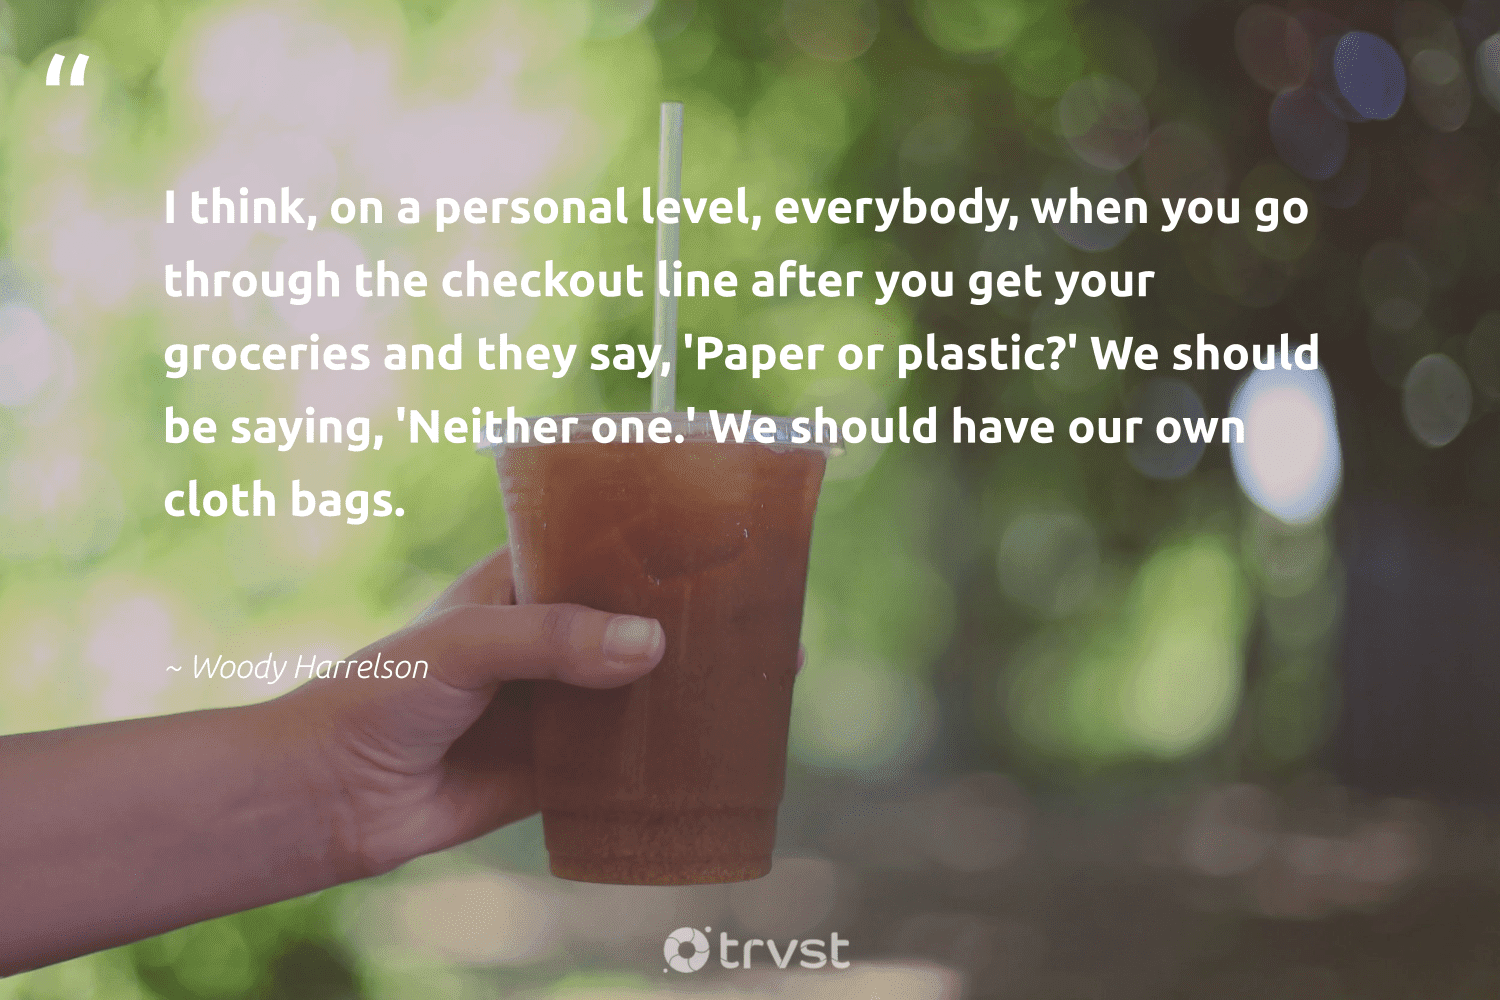 """""""I think, on a personal level, everybody, when you go through the checkout line after you get your groceries and they say, 'Paper or plastic?' We should be saying, 'Neither one.' We should have our own cloth bags.""""  - Woody Harrelson #trvst #quotes #plasticwaste #plastic #plastics #sustainableliving #earthdayeveryday #planetearthfirst #plasticsucks #ecoactivism #saveourplanet #collectiveaction"""